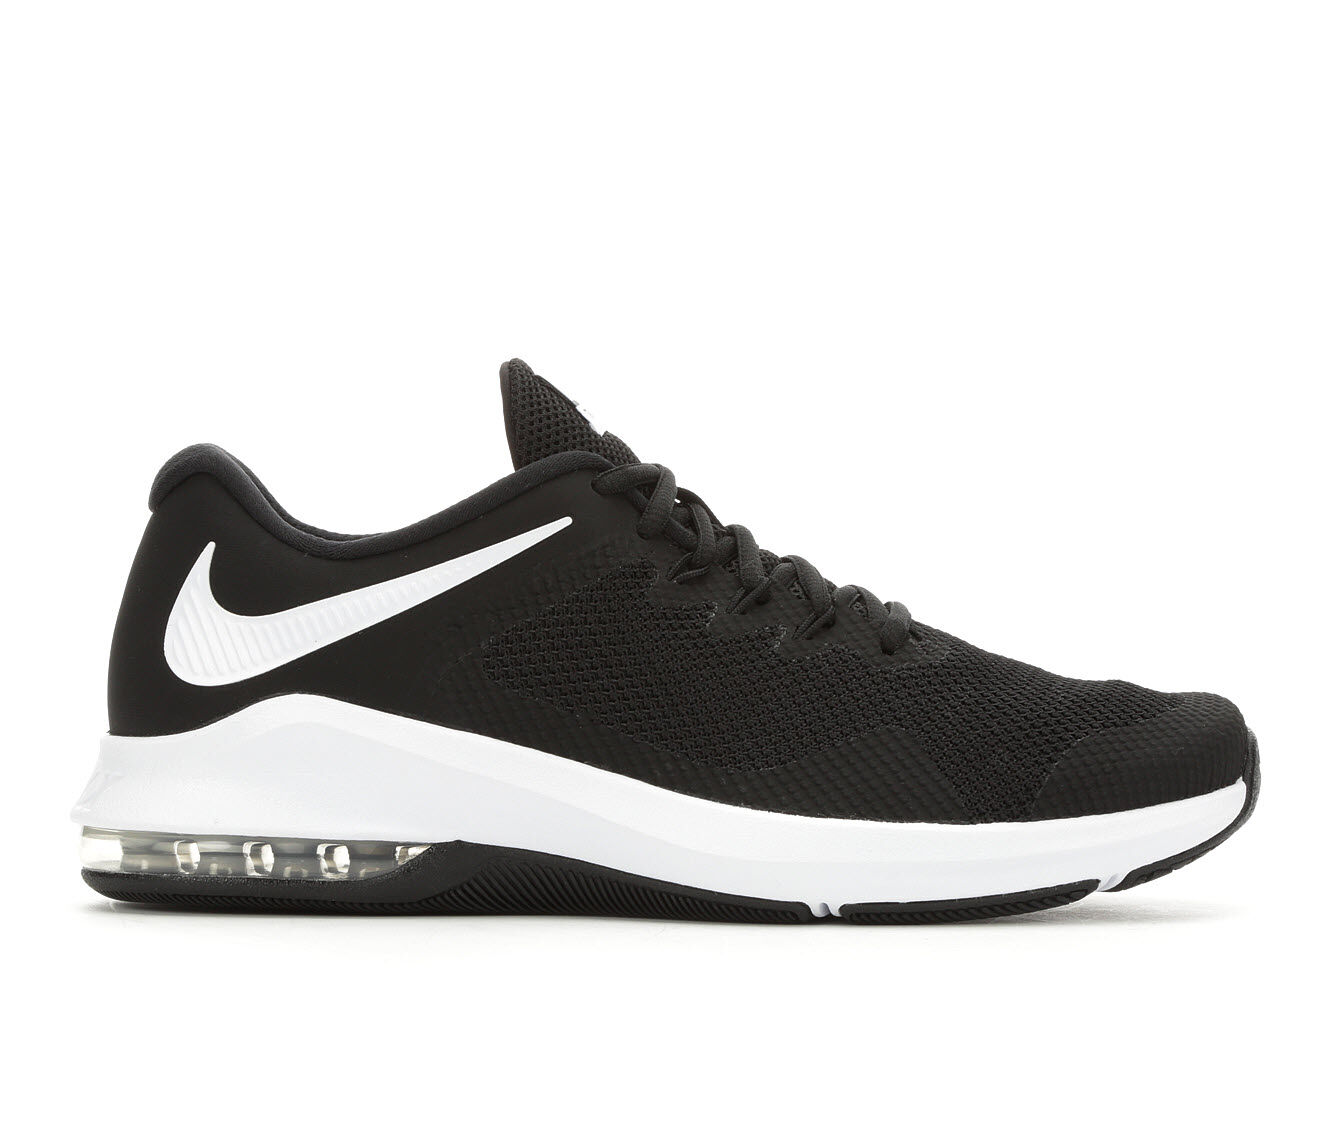 Men's Nike AIr Max Alpha Trainer Training Shoes Blk/Wht 001